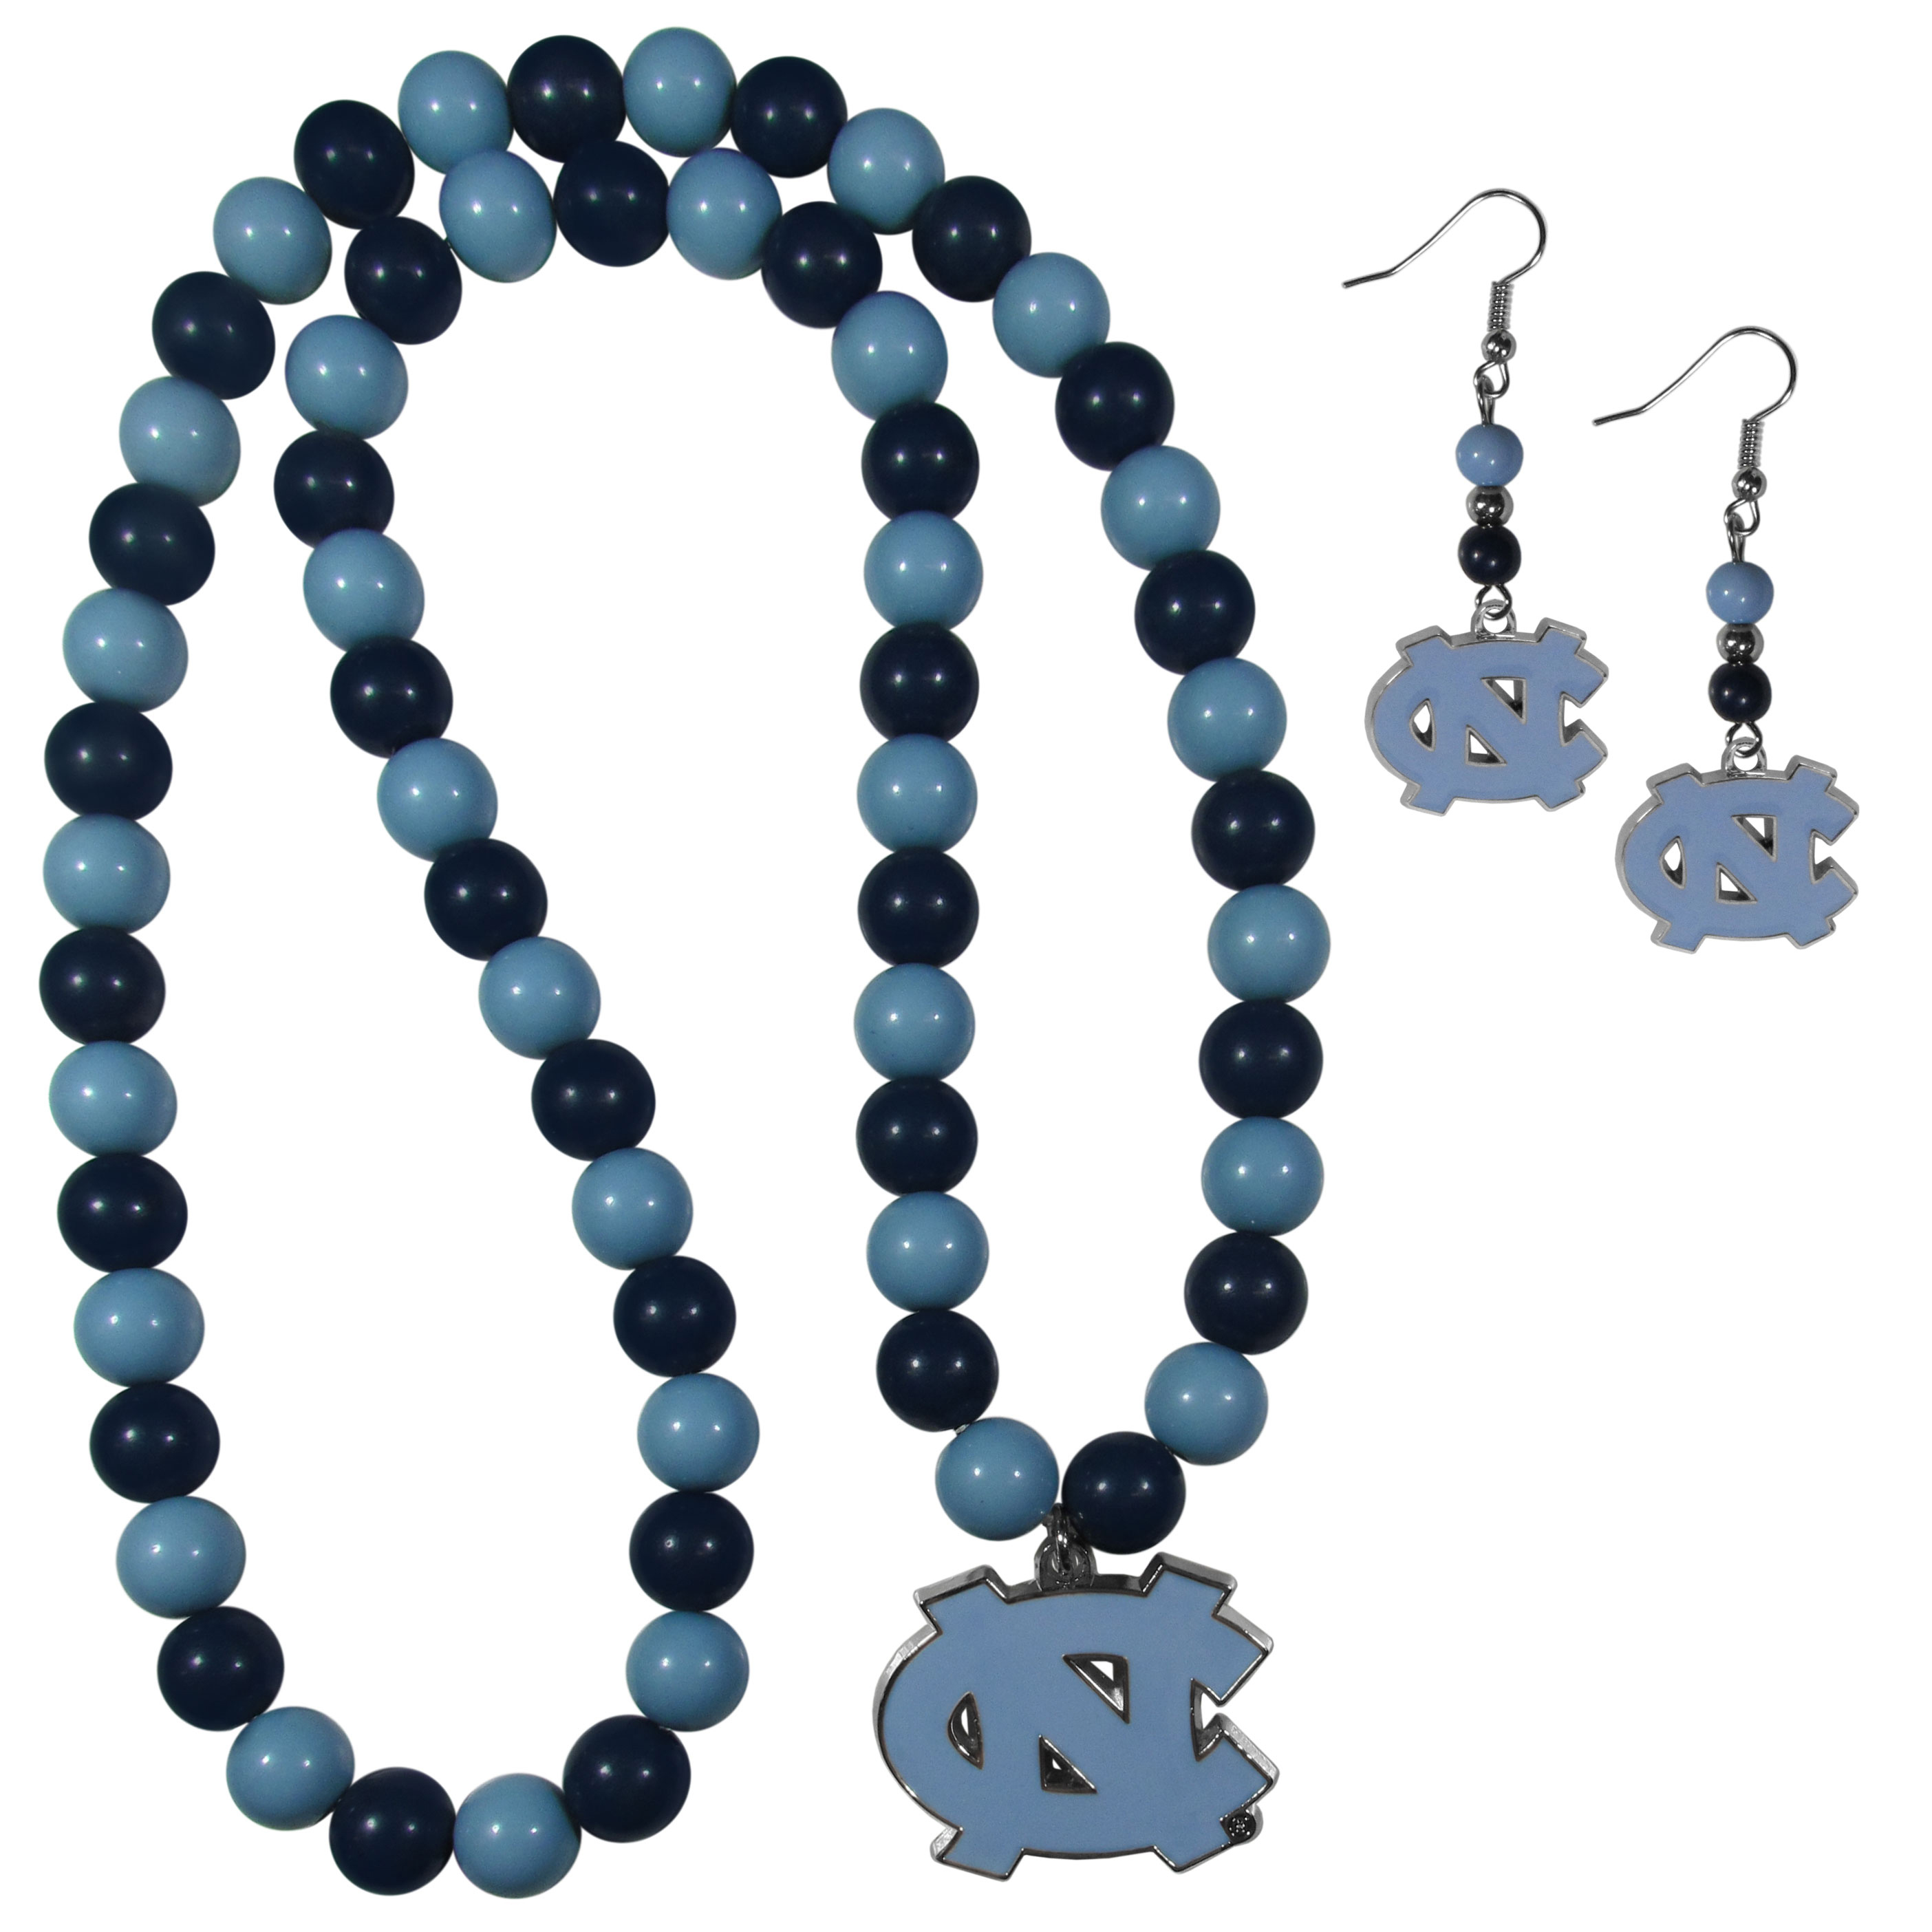 N. Carolina Tar Heels Fan Bead Earrings and Necklace Set - These fun and colorful N. Carolina Tar Heels fan bead jewelry pieces are an eyecatching way to show off your team spirit. The earrings feature hypoallergenic, nickel free fishhook post and 2 team colored beads with a beautifully carved team charm to finish this attractive dangle look. The mathcing bracelet has alternating team colored beads on a stretch cord and features a matching team charm.